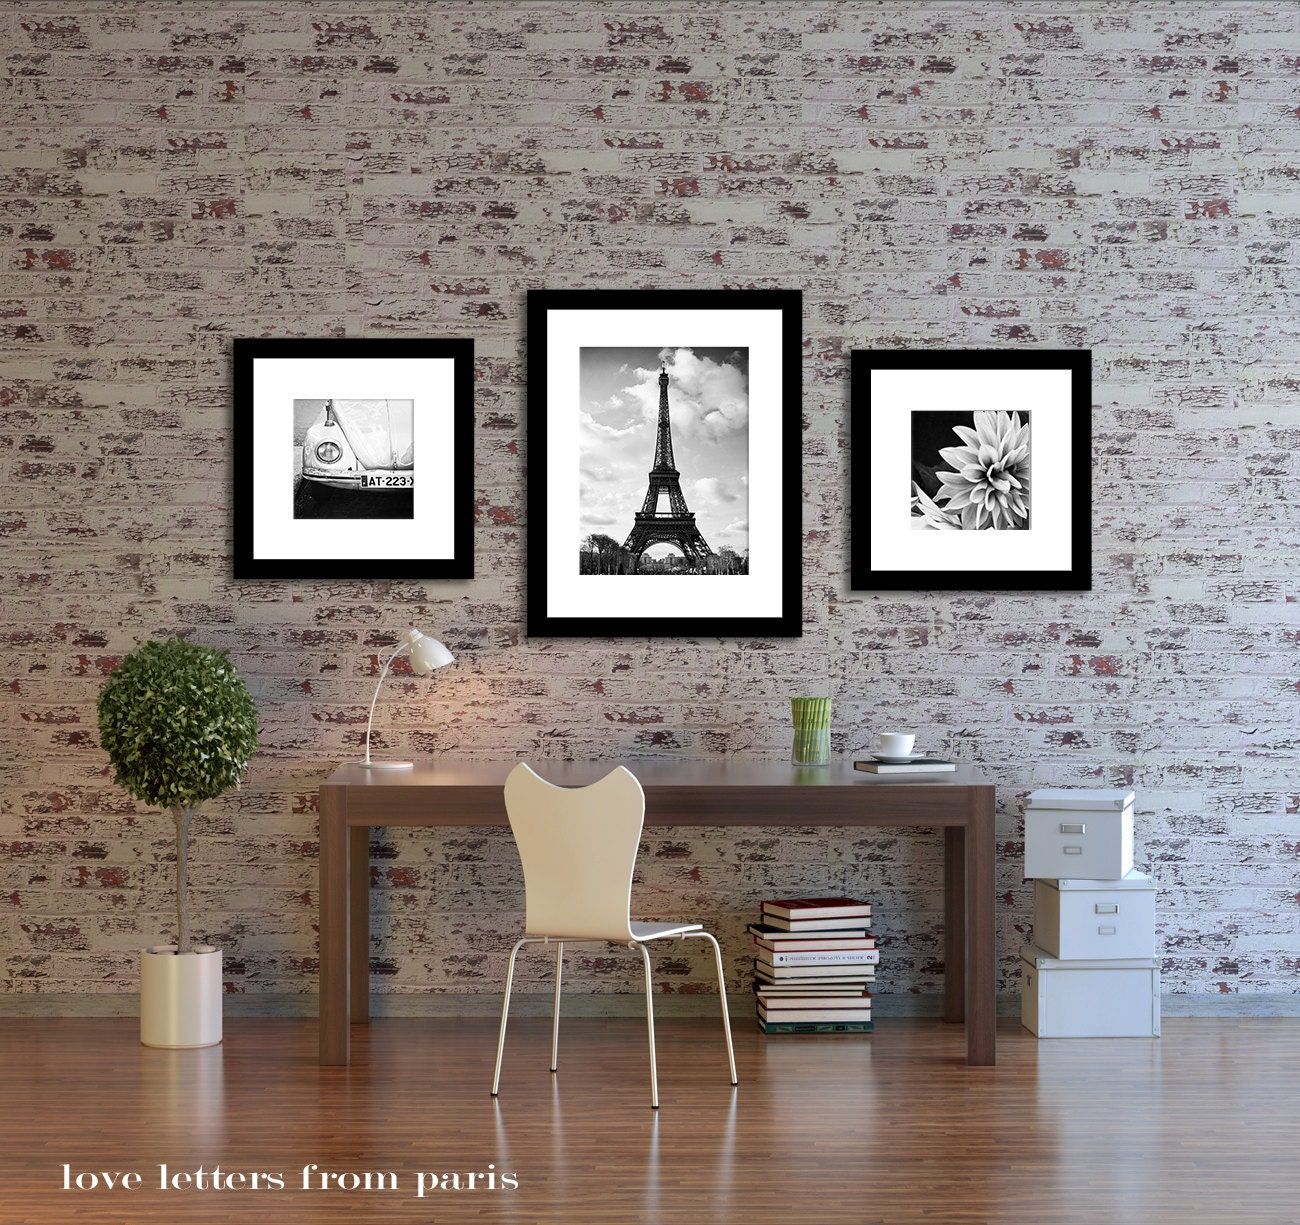 Wall Decor Home Accents : Paris photograph home decor wall art by